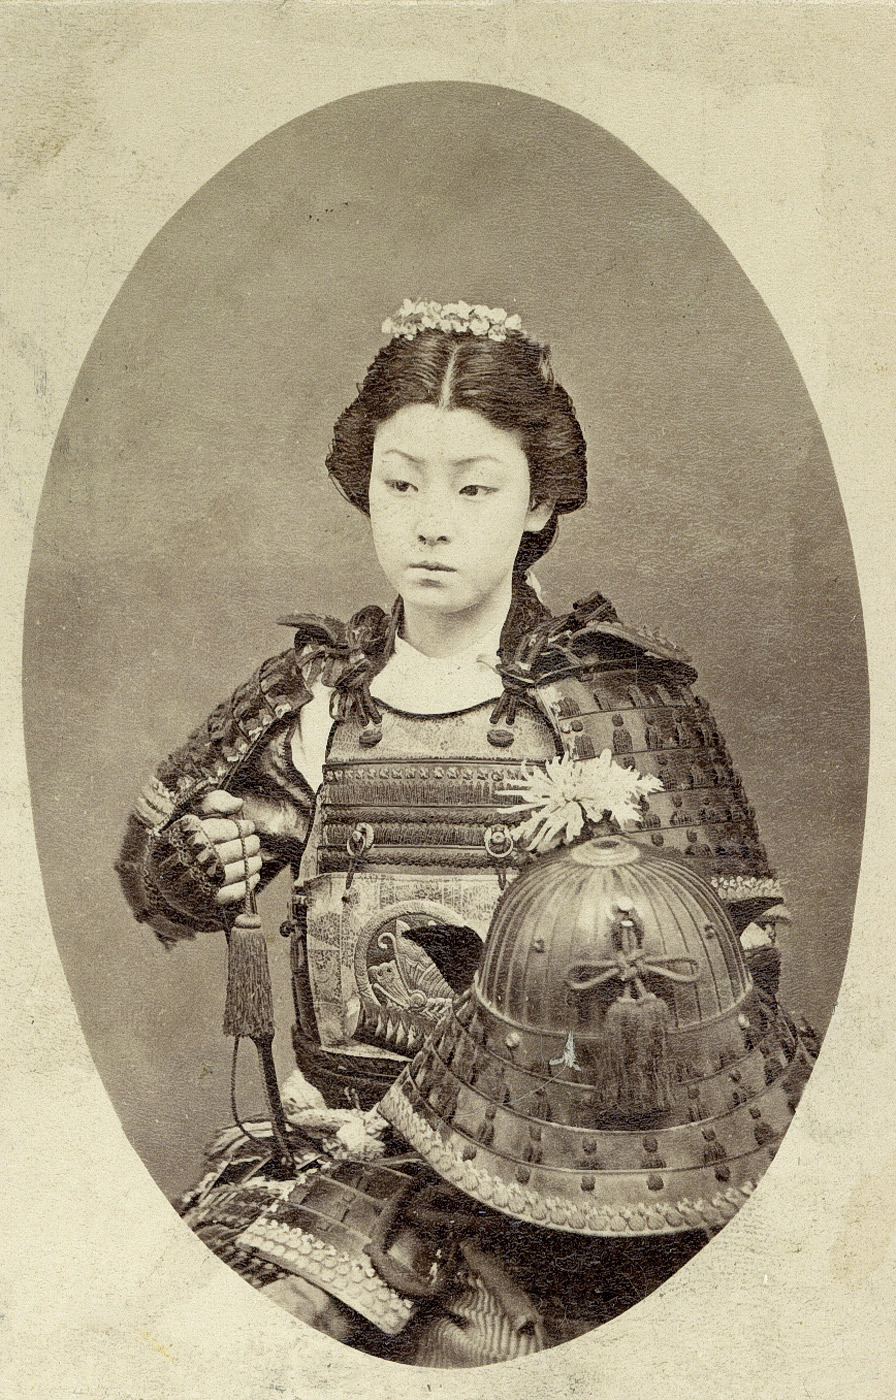 "asianhistory:   The picture above is a vintage photograph of an onna-bugeisha, one of the female warriors of the upper social classes in feudal Japan. Often mistakenly referred to as ""female samurai"", female warriors have a long history in Japan, beginning long before samurai emerged as a warrior class. However, they did fight alongside of samurai warriors. They were wives, widows and daughters who answered the call of duty to protect their families, households and honor in times of war. Onna Bugeisha were the exception, rather than the rule, but they still played an important role nonetheless. One famous example is empress Jingu, who reportedly lead a successful conquest against Korea in 200 AD without shedding a single drop of blood (or so the legends say).  This is the second time this photo has gone around, and it is still not an image of an Onna Bugeisha, but rather was a photograph from a set of photos of Kabuki actors and Geisha in costume.  The original caption read:  Portraits of Japanese Kabuki actors and geisha. Unknown photographer, 1870s.  It went on auction, which you can see listed here, and there were 34 prints total, but none of them were of Onna Bugeisha. Just a heads up! There are images of Onna Bugeisha on this blog here."